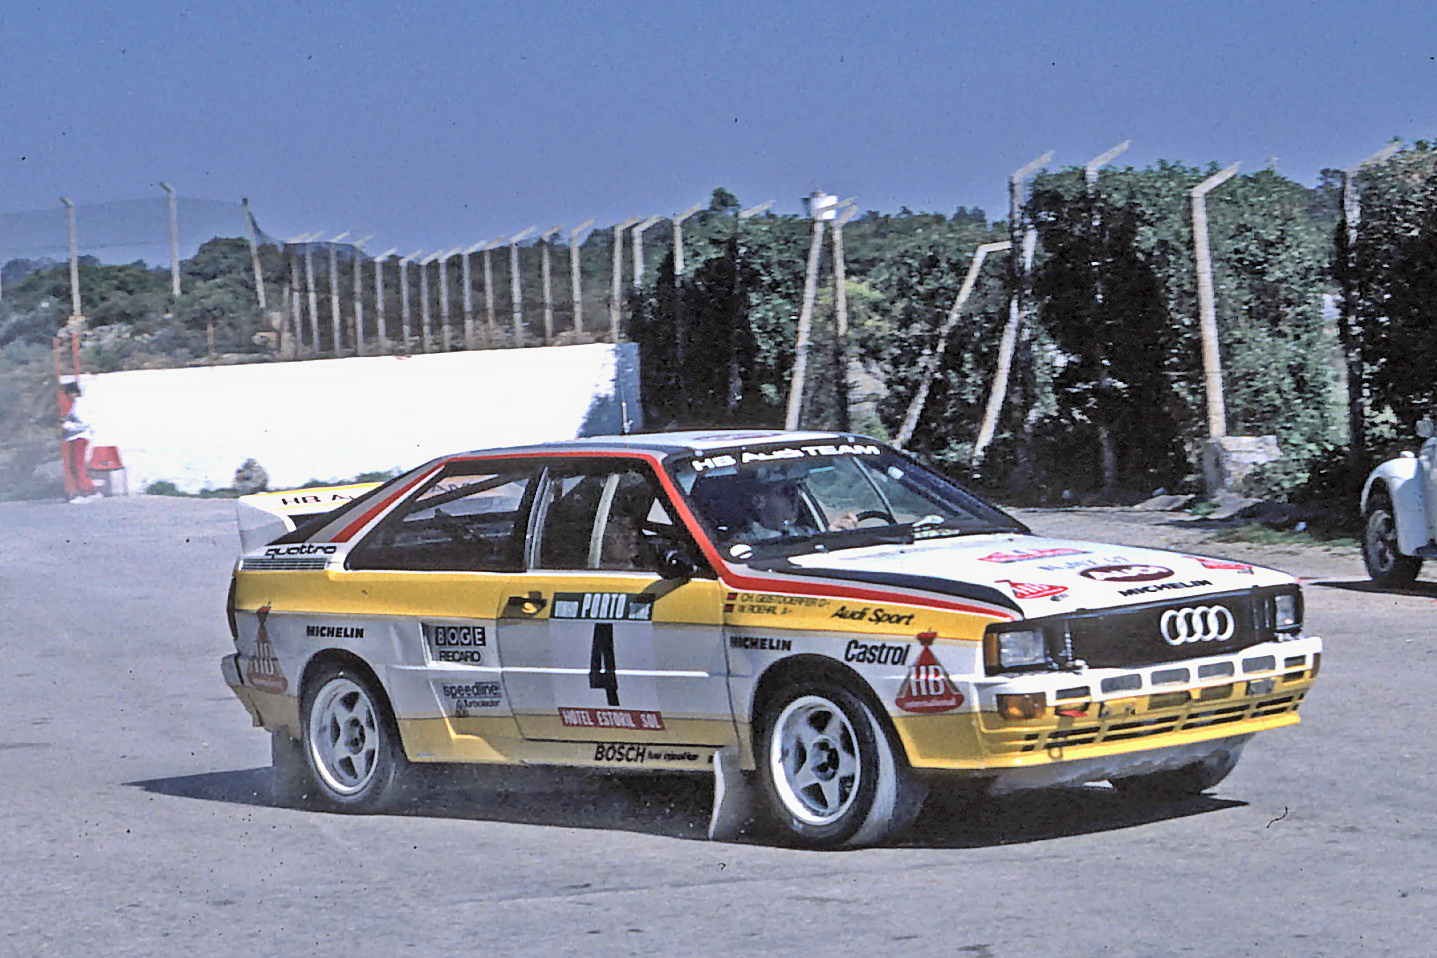 Walter R hrl driving a Quattro A2 at the 1984 Rally Portugal.